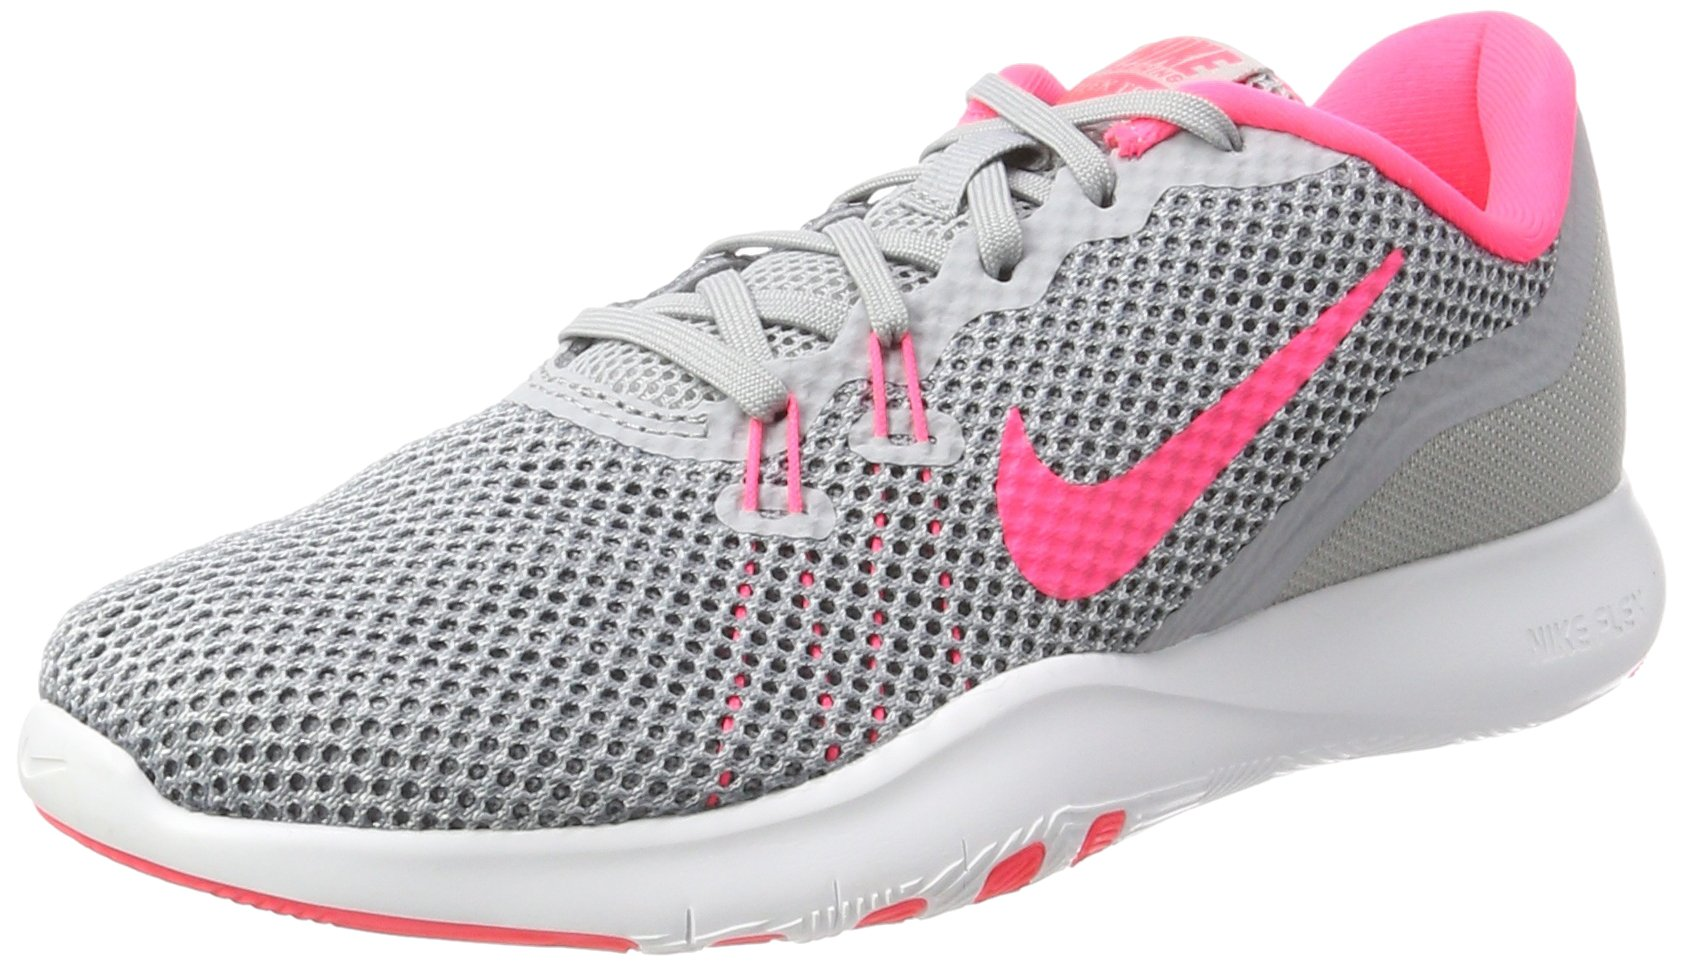 Galleon - Nike Women s Flex Trainer 7 Wolf Grey Racer Pink - Stealth  Ankle-High Fabric Running Shoe 7.5M 5cba2bea7e943